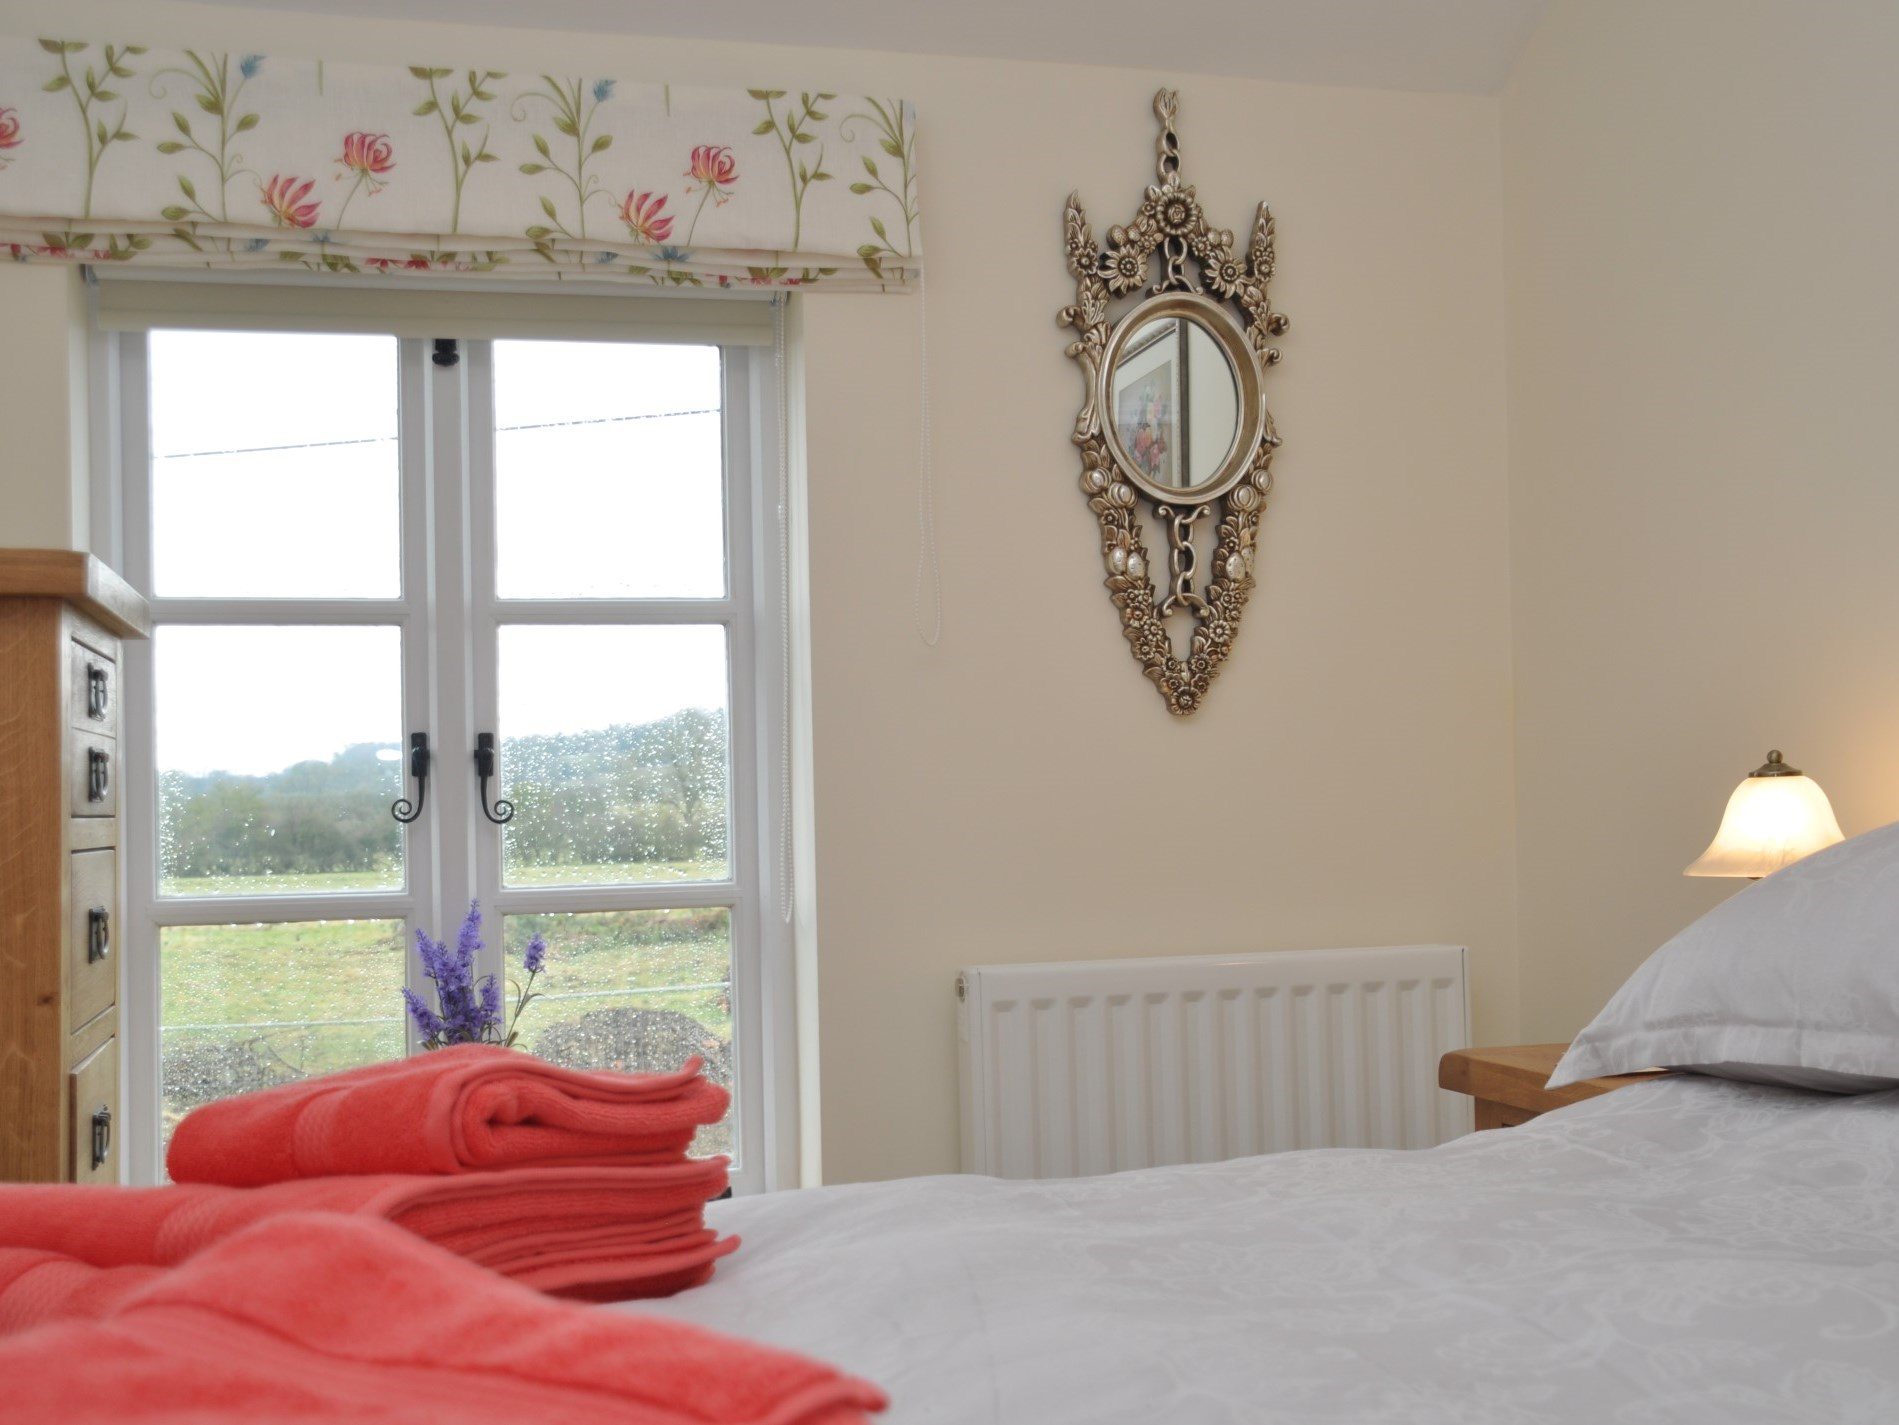 Wake up to views across the countryside